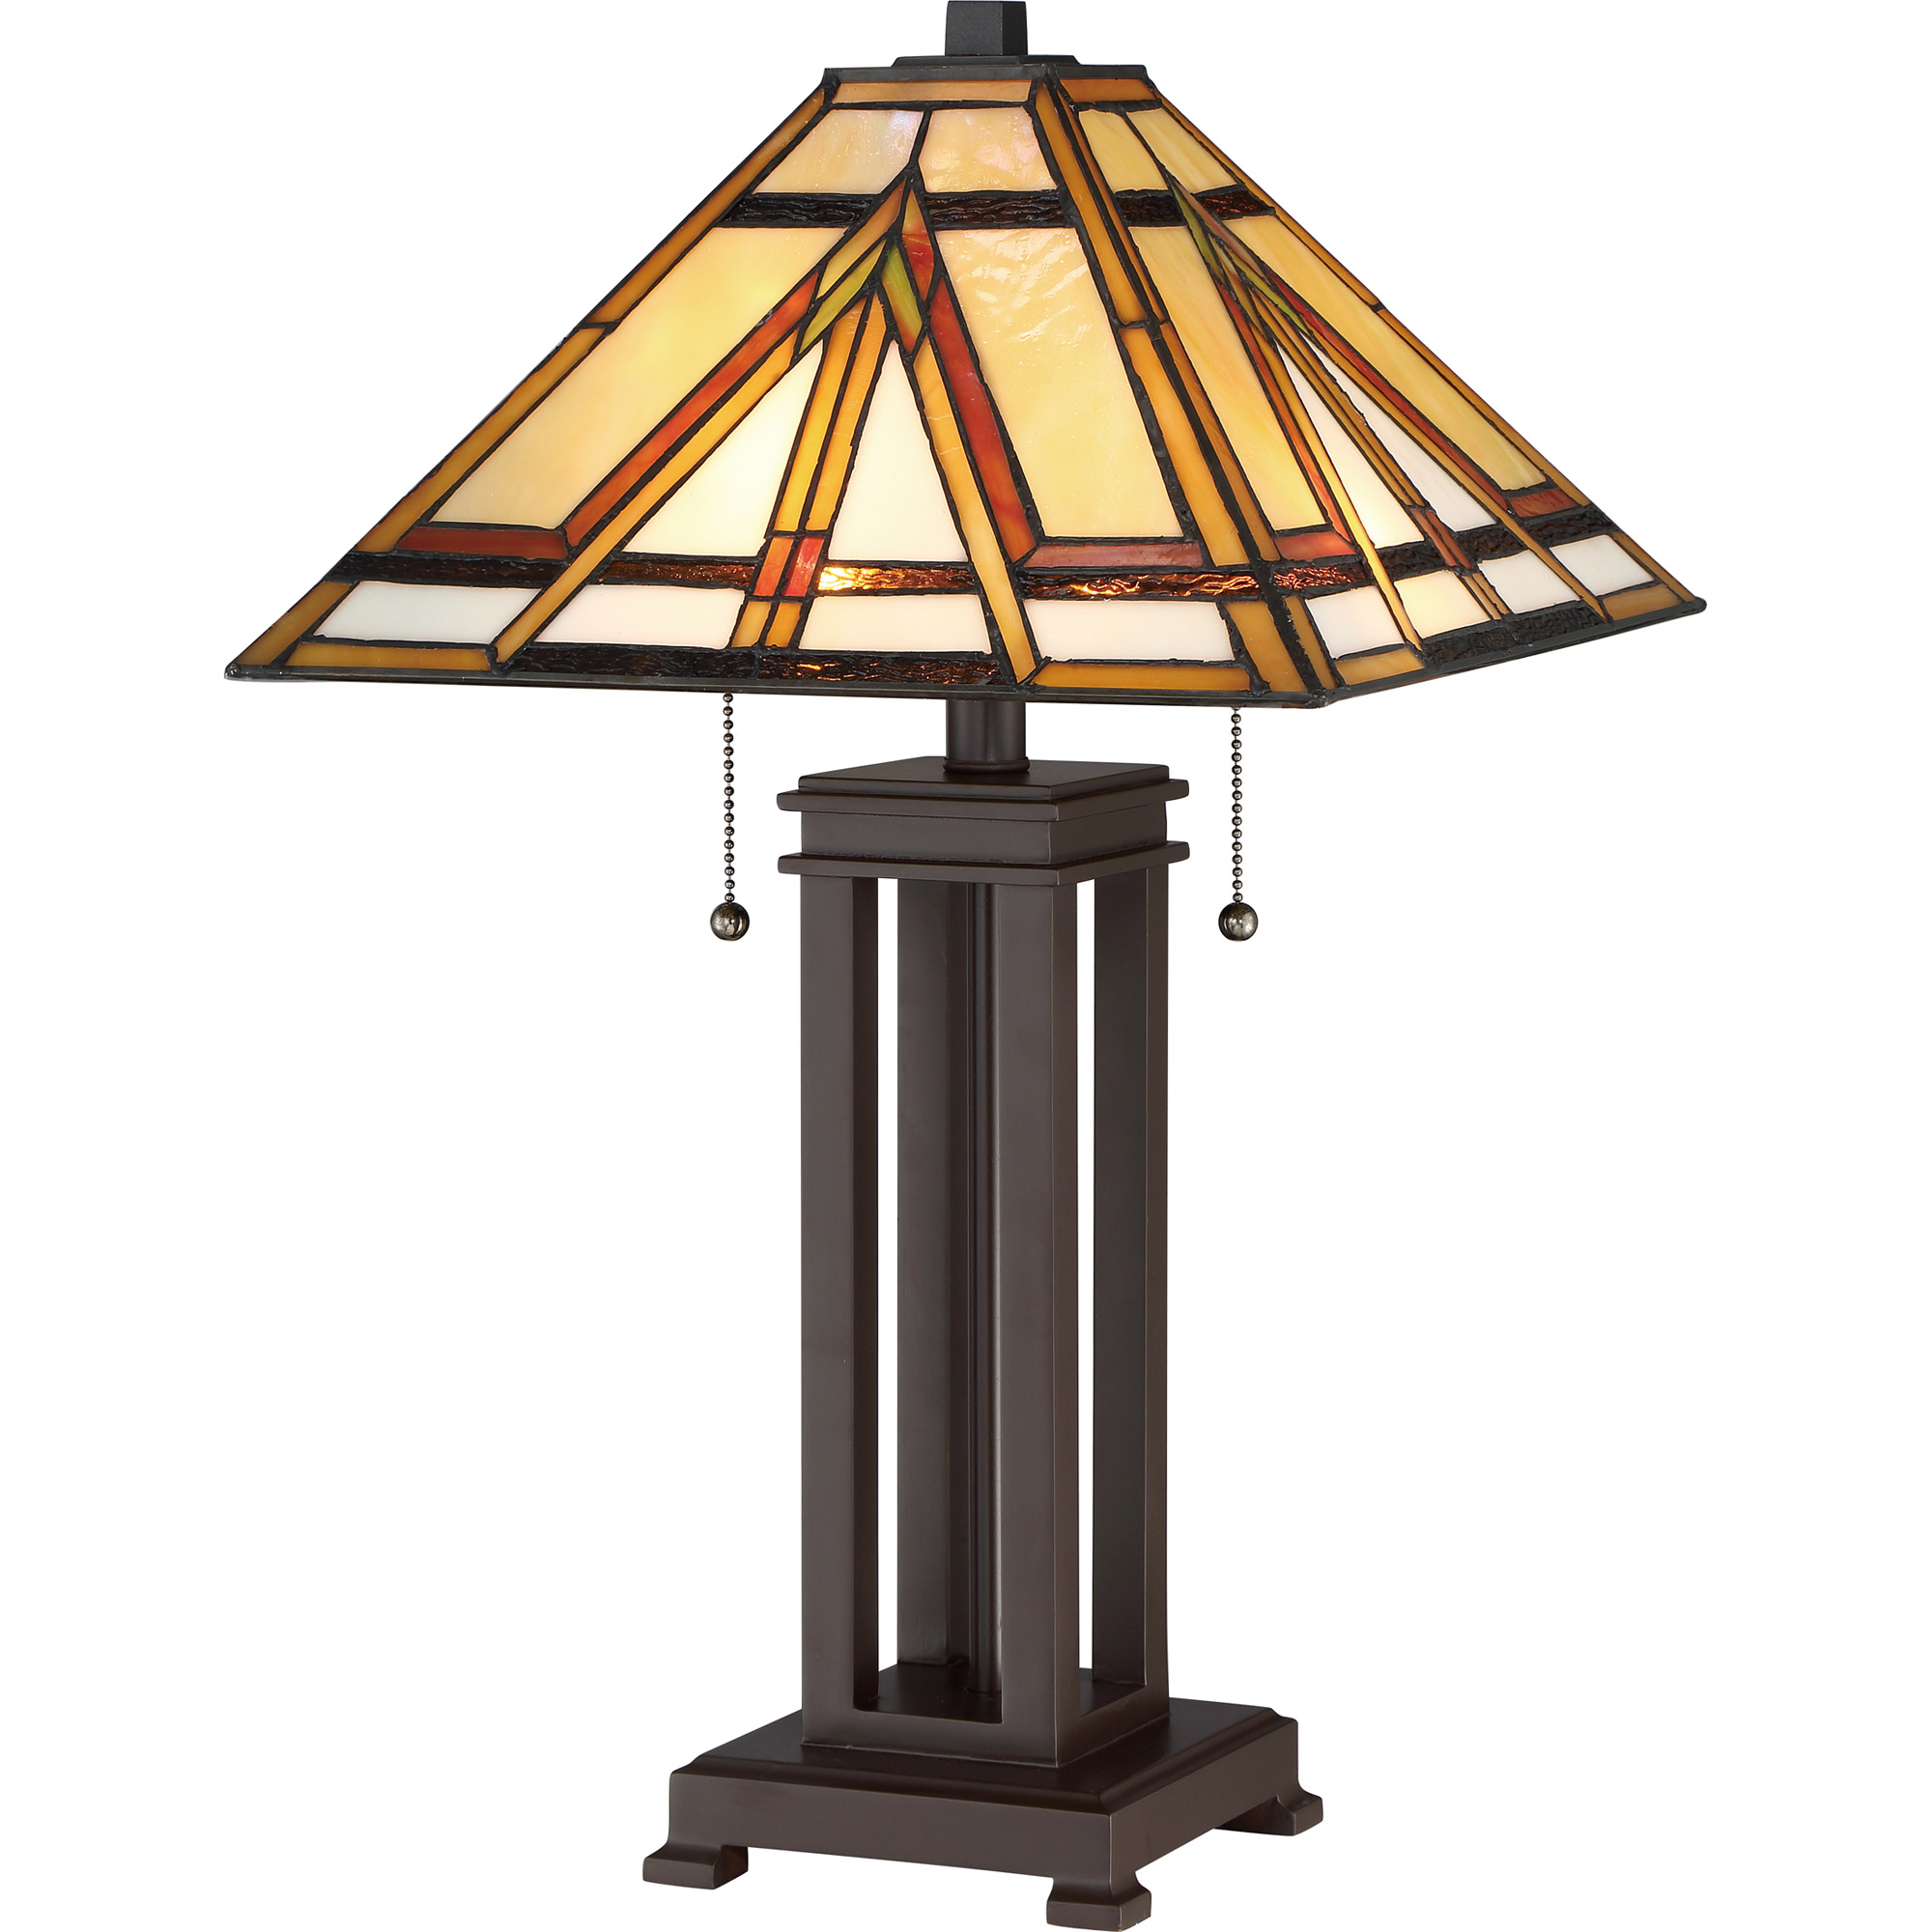 quoizel of new gallagher lamp lamps plld table ideas best brnz